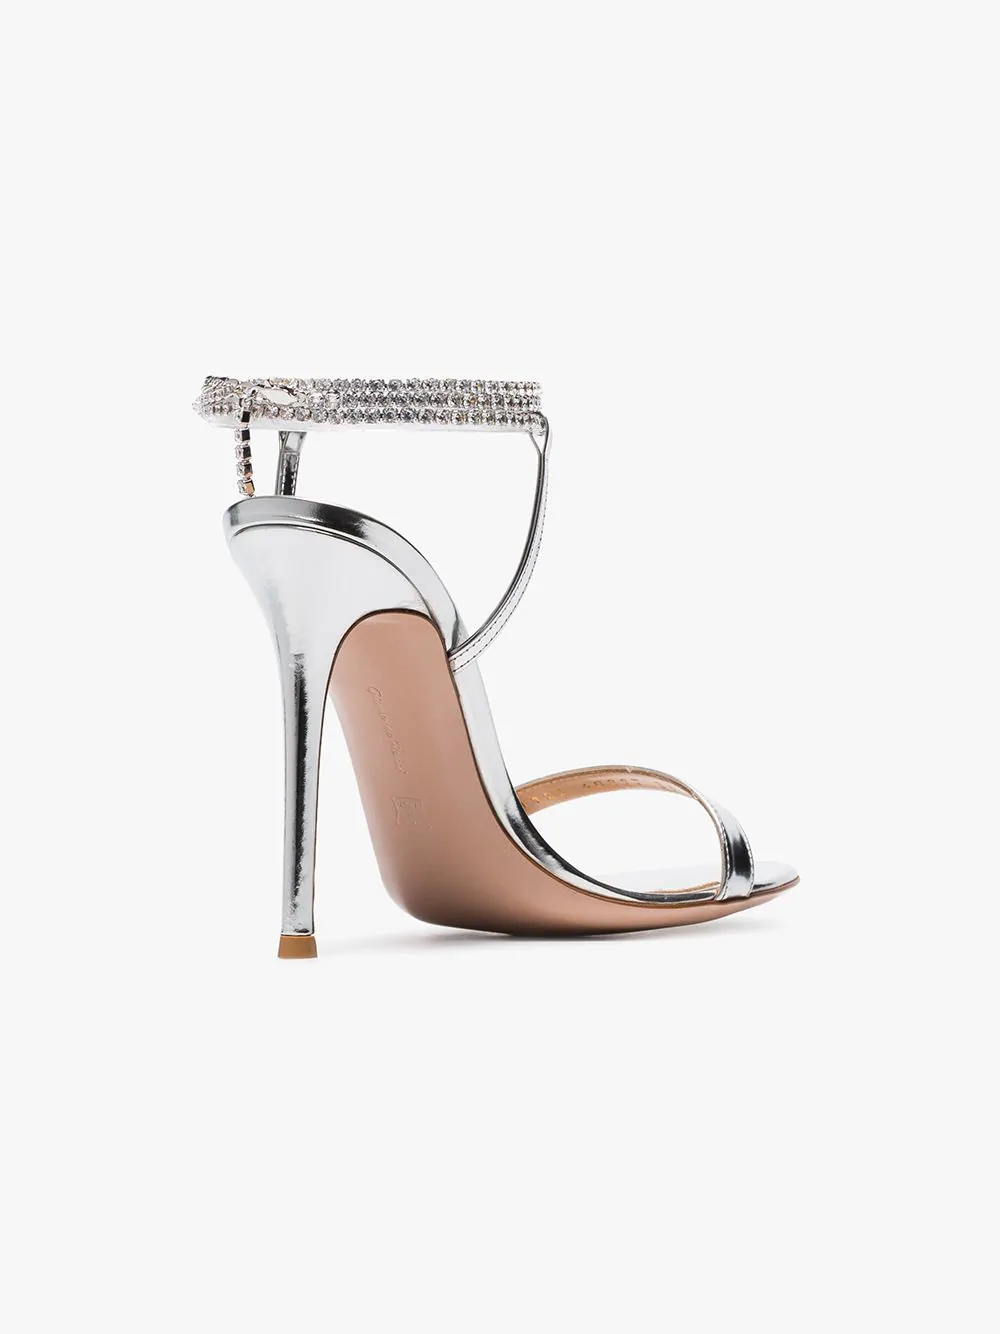 8eaef803f Gianvito Rossi Silver Tennis 105 Crystal Metallic Sandals